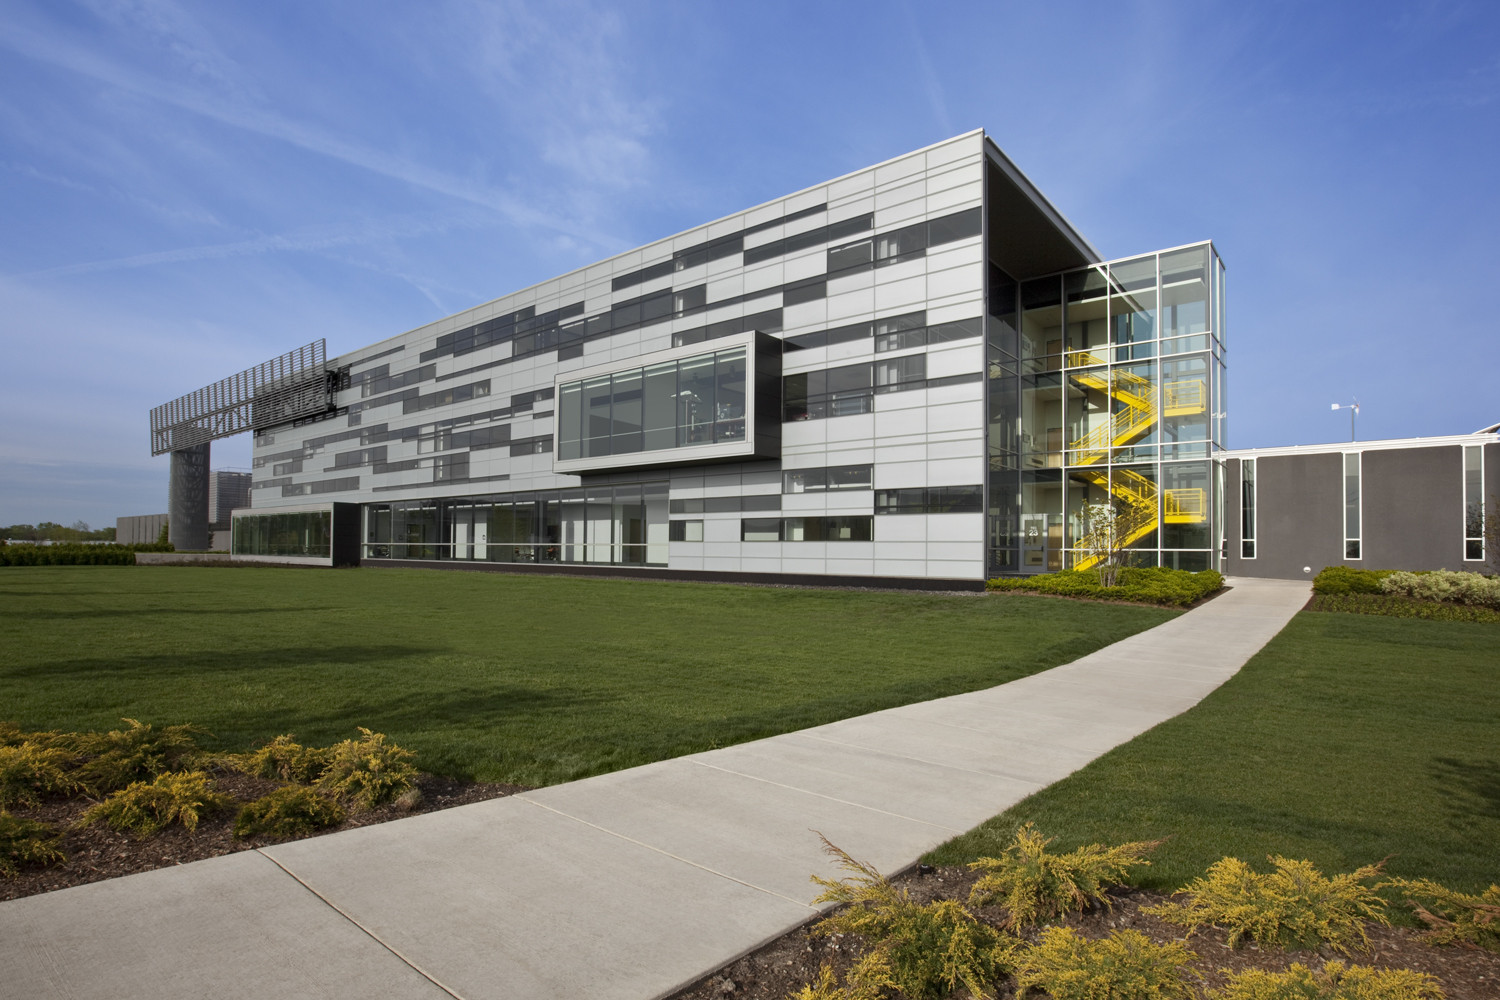 College of DuPage Technology Education Center / DeStefano Partners, ©  Barbara Karant / Karant + Associates